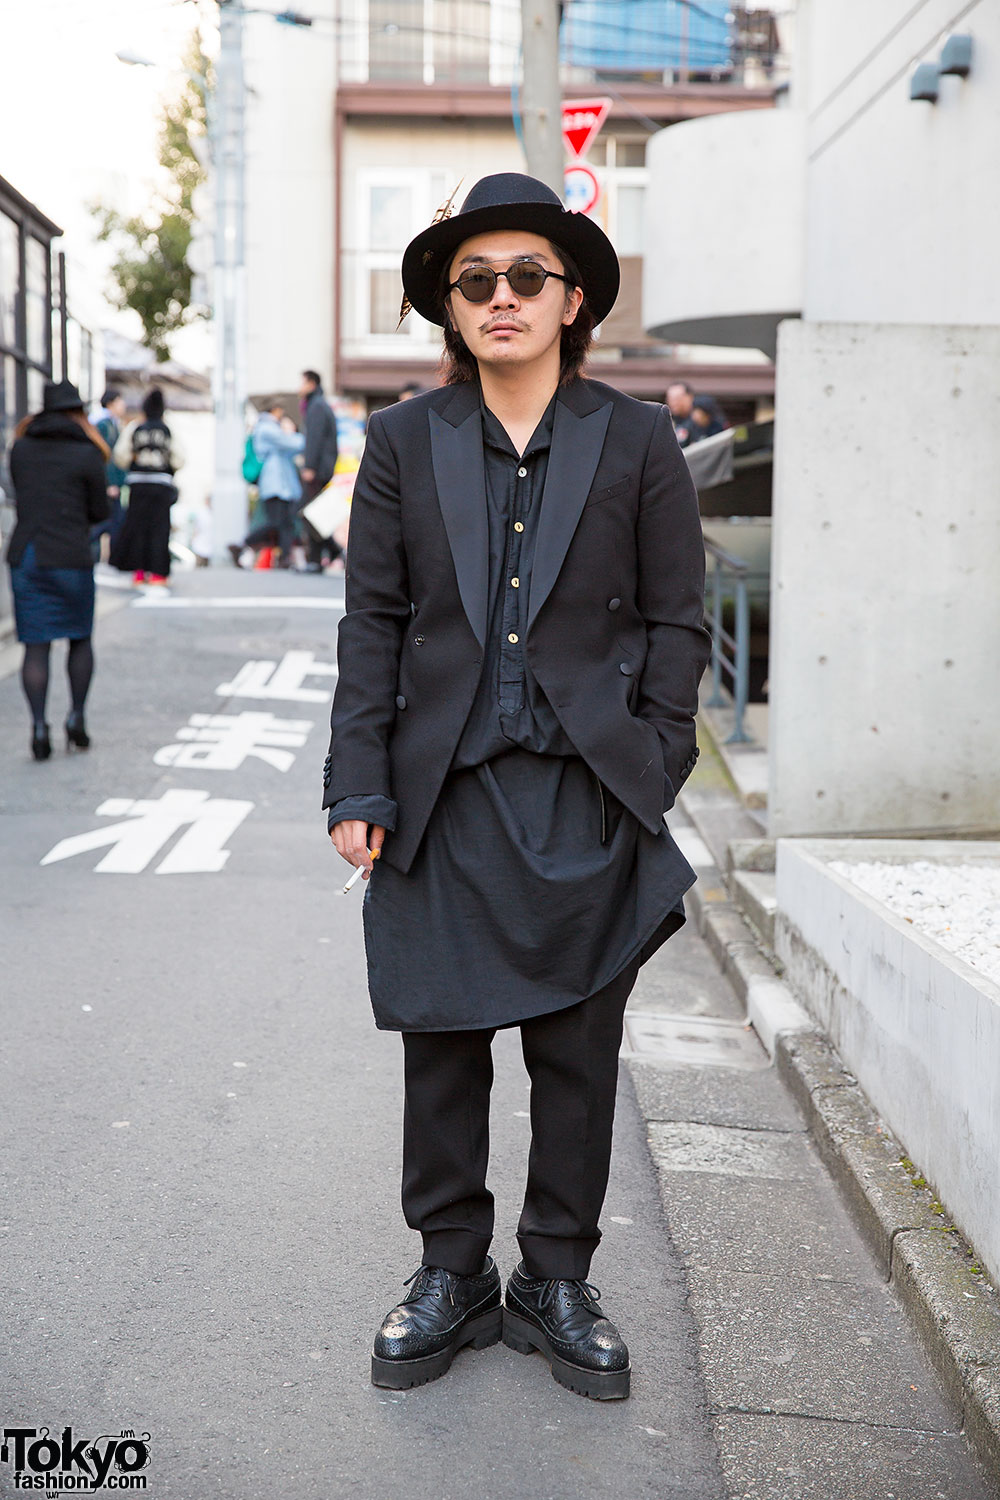 683189426a8 Art Comes First Suit   Hat w  Banal Chic Bizarre Brogues in Harajuku